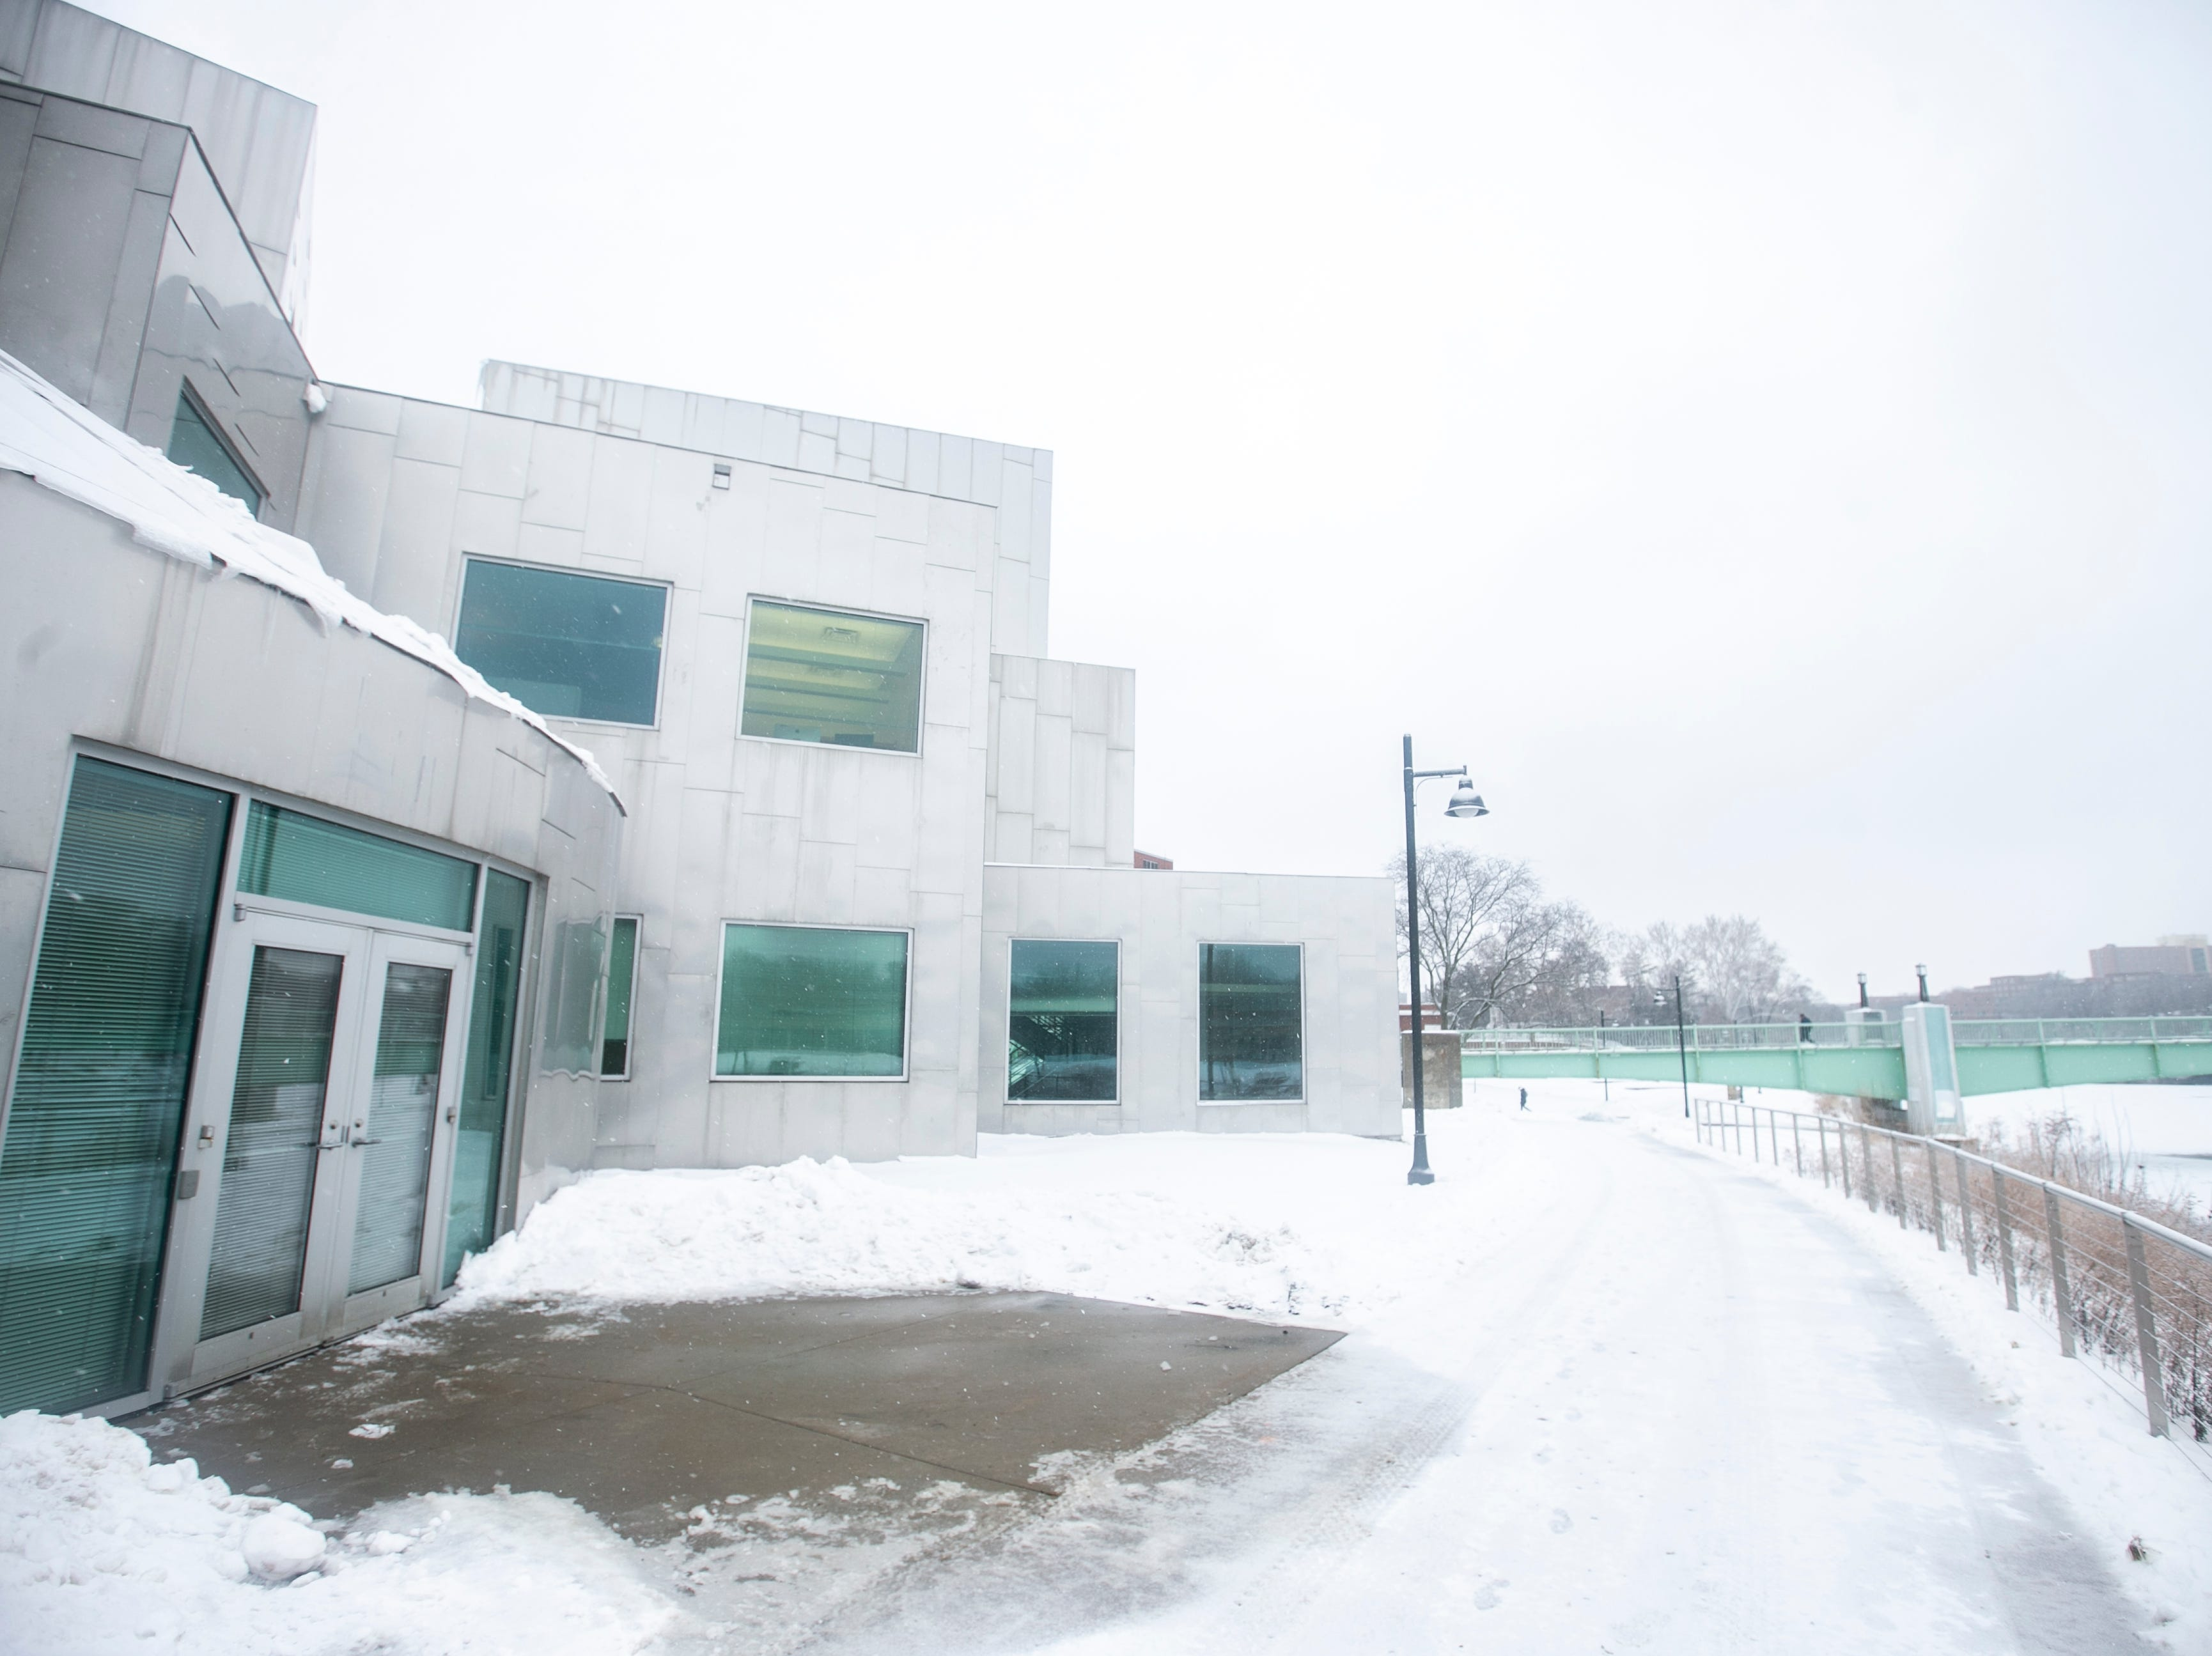 Iowa Advanced Technology Laboratories is seen as light snow falls on Tuesday, Jan. 22, 2019, in Iowa City, Iowa. Architect Frank Gehry designed the building.